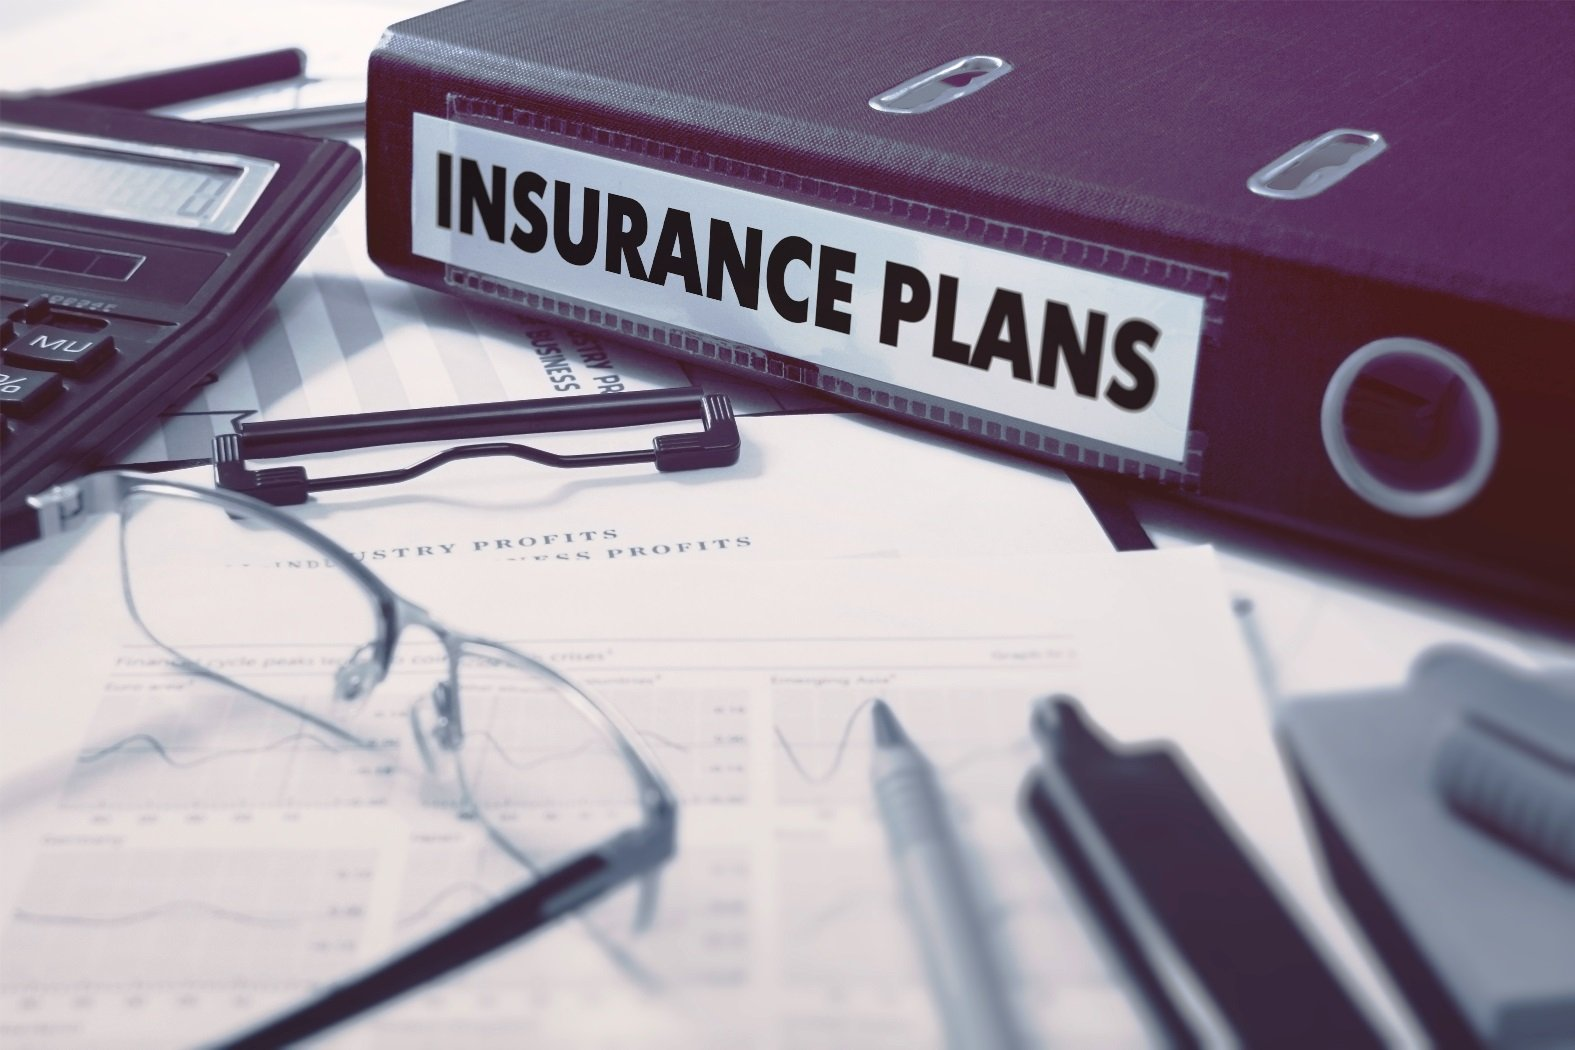 7 Reasons to Call a Health Insurance Broker During Open Enrollment